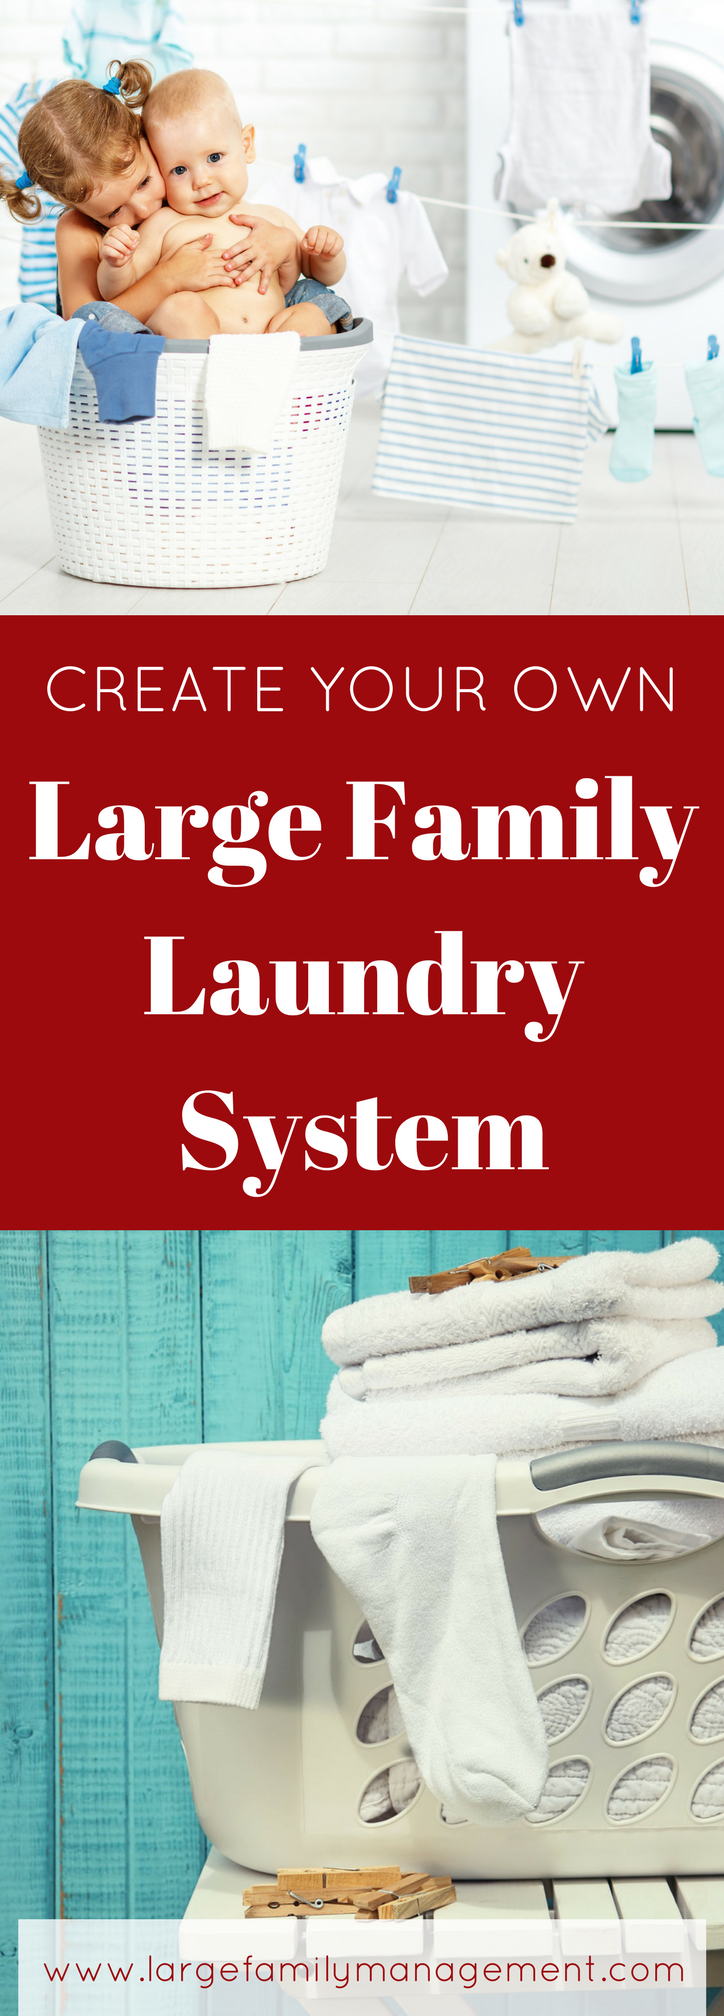 large family laundry system